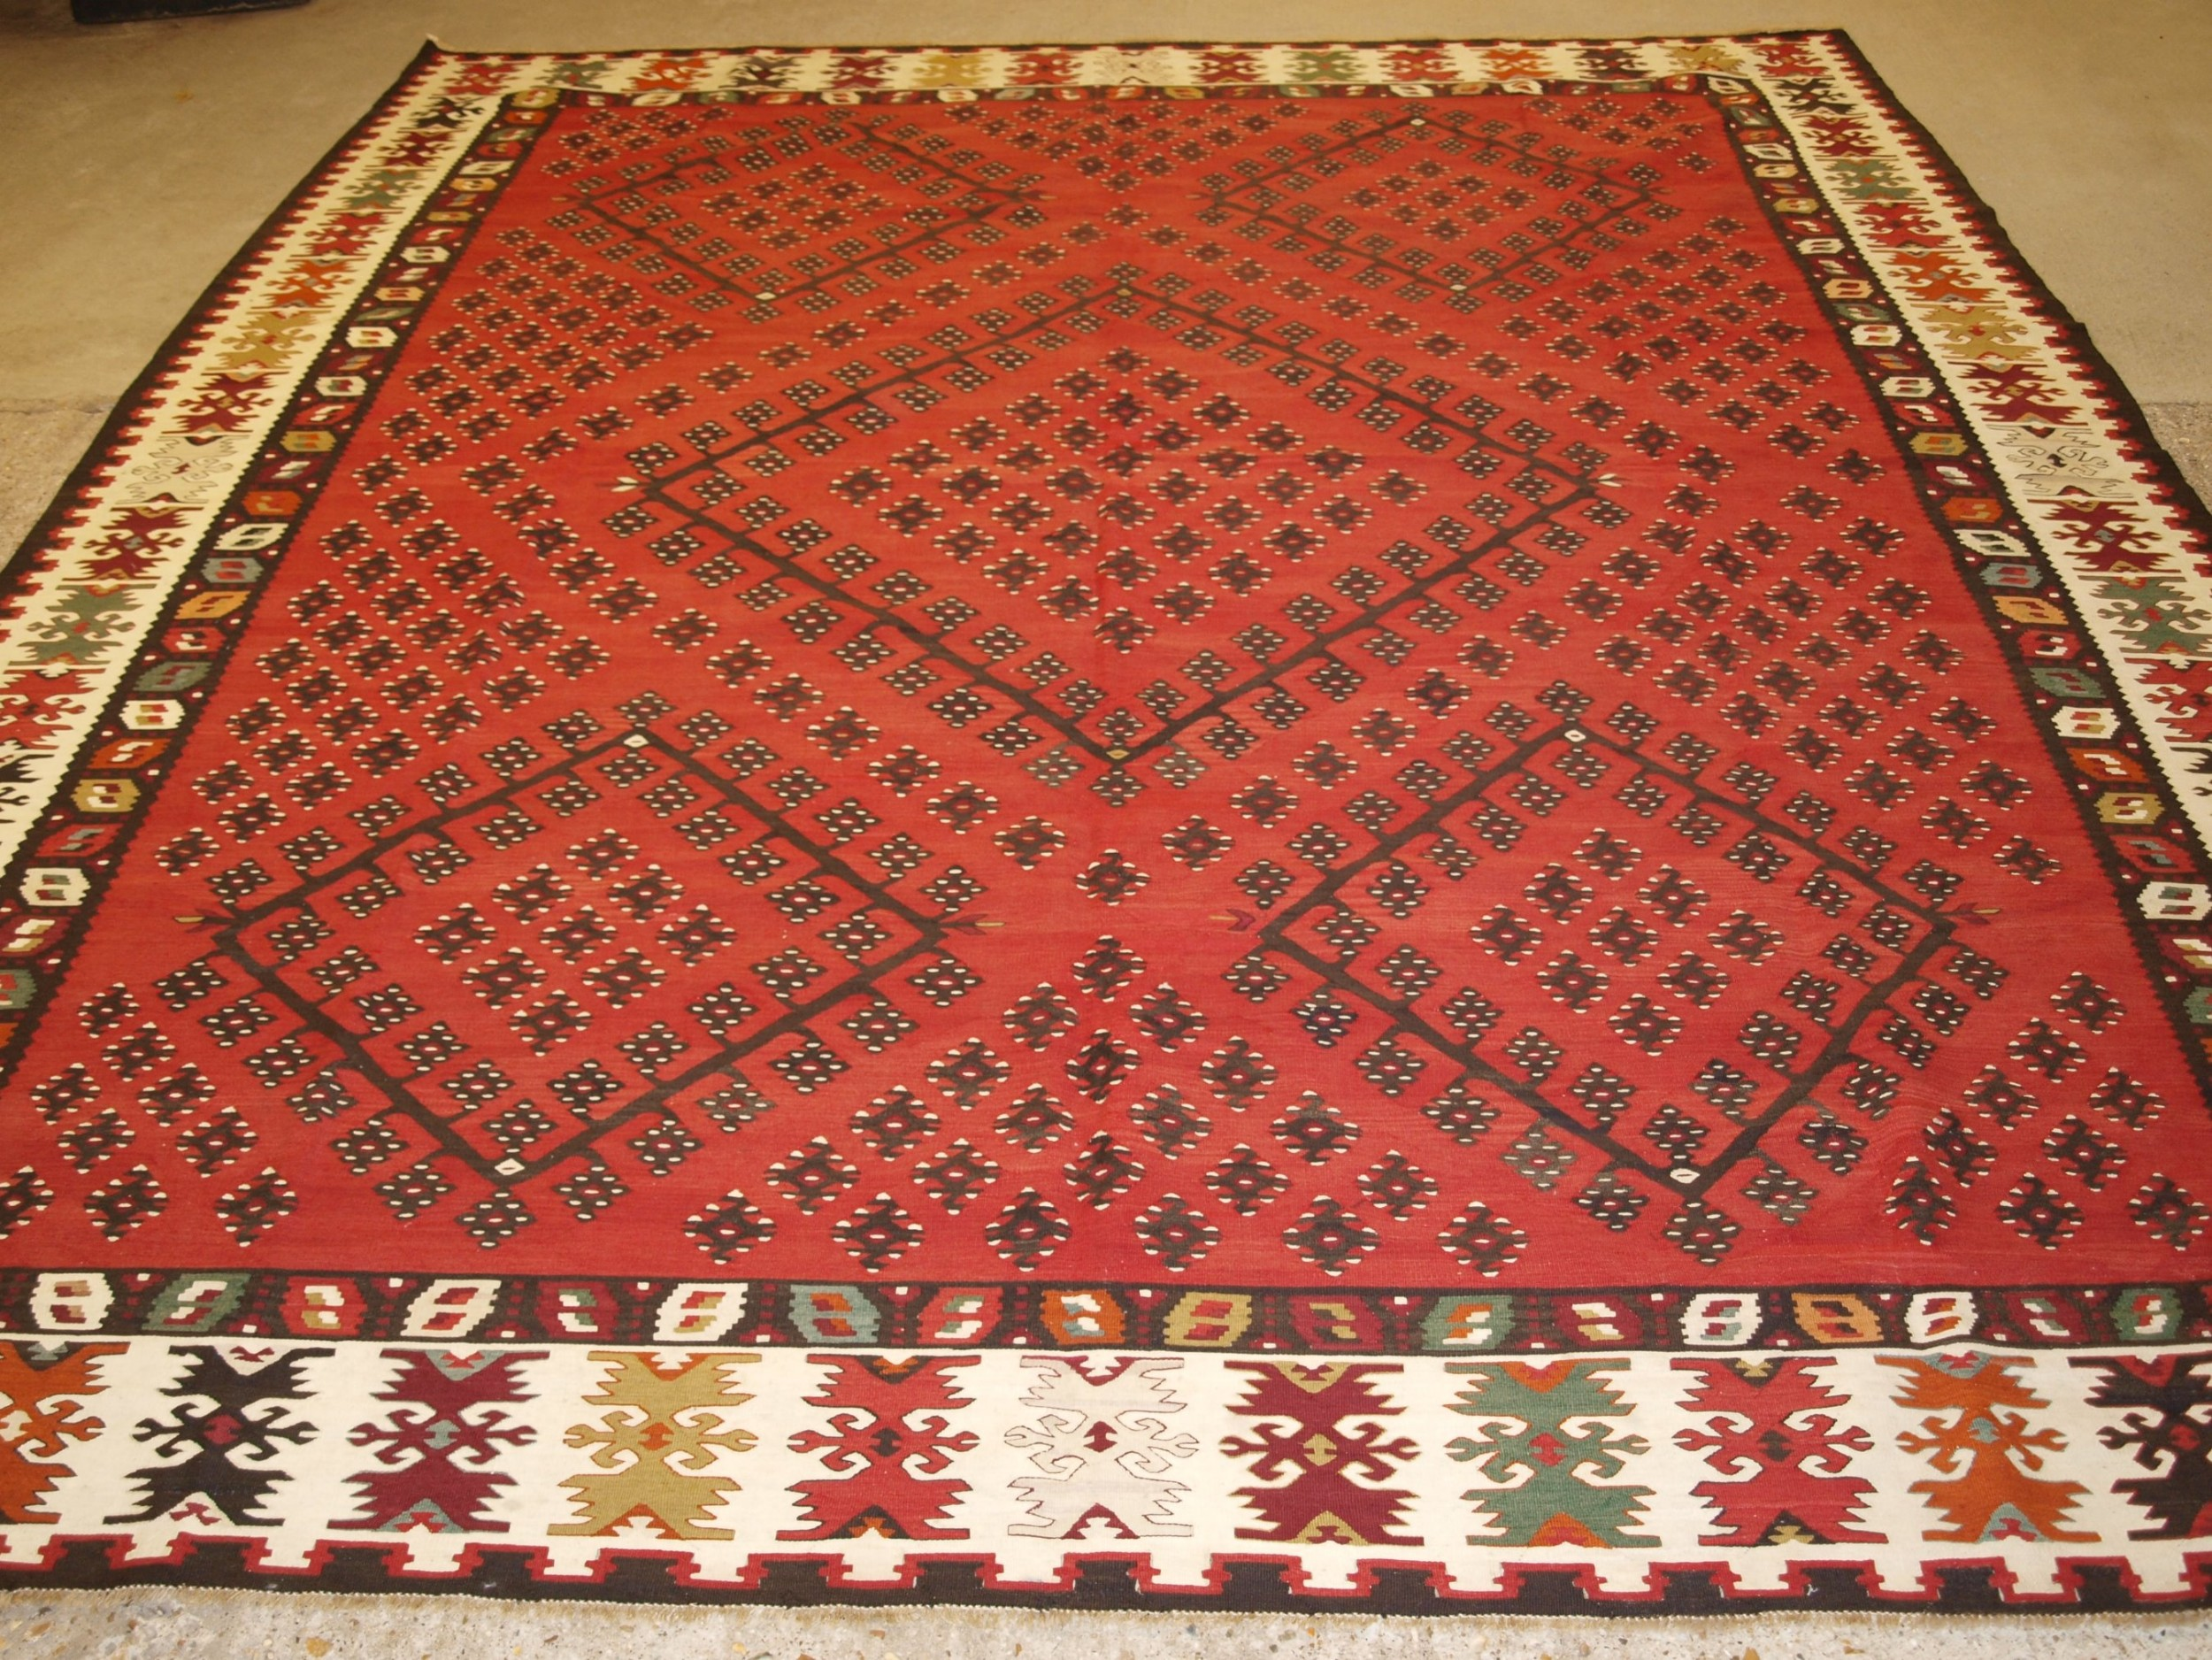 old sharkoy kilim of large size with traditional design circa 1920